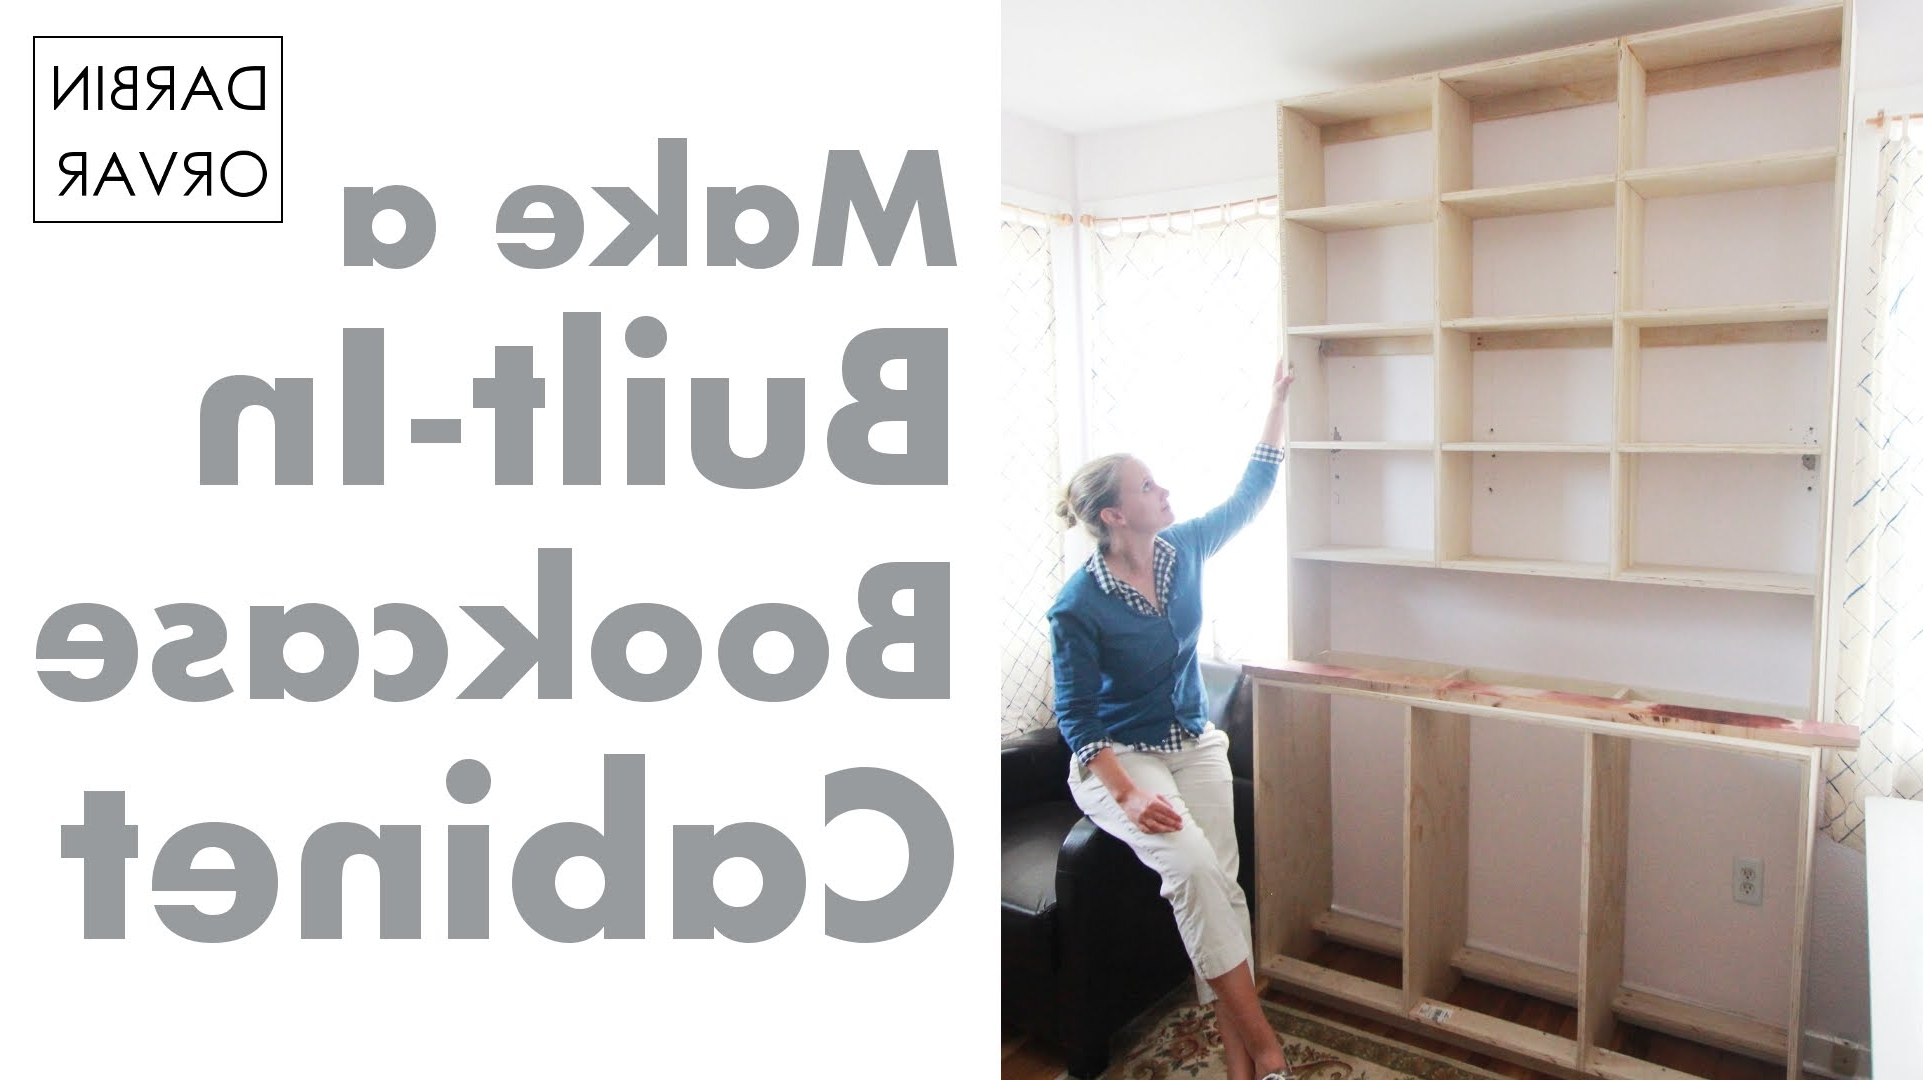 Built In Bookcases & Cabinet Construction – Youtube With Regard To Current Bookcases With Bottom Cabinets (View 9 of 15)